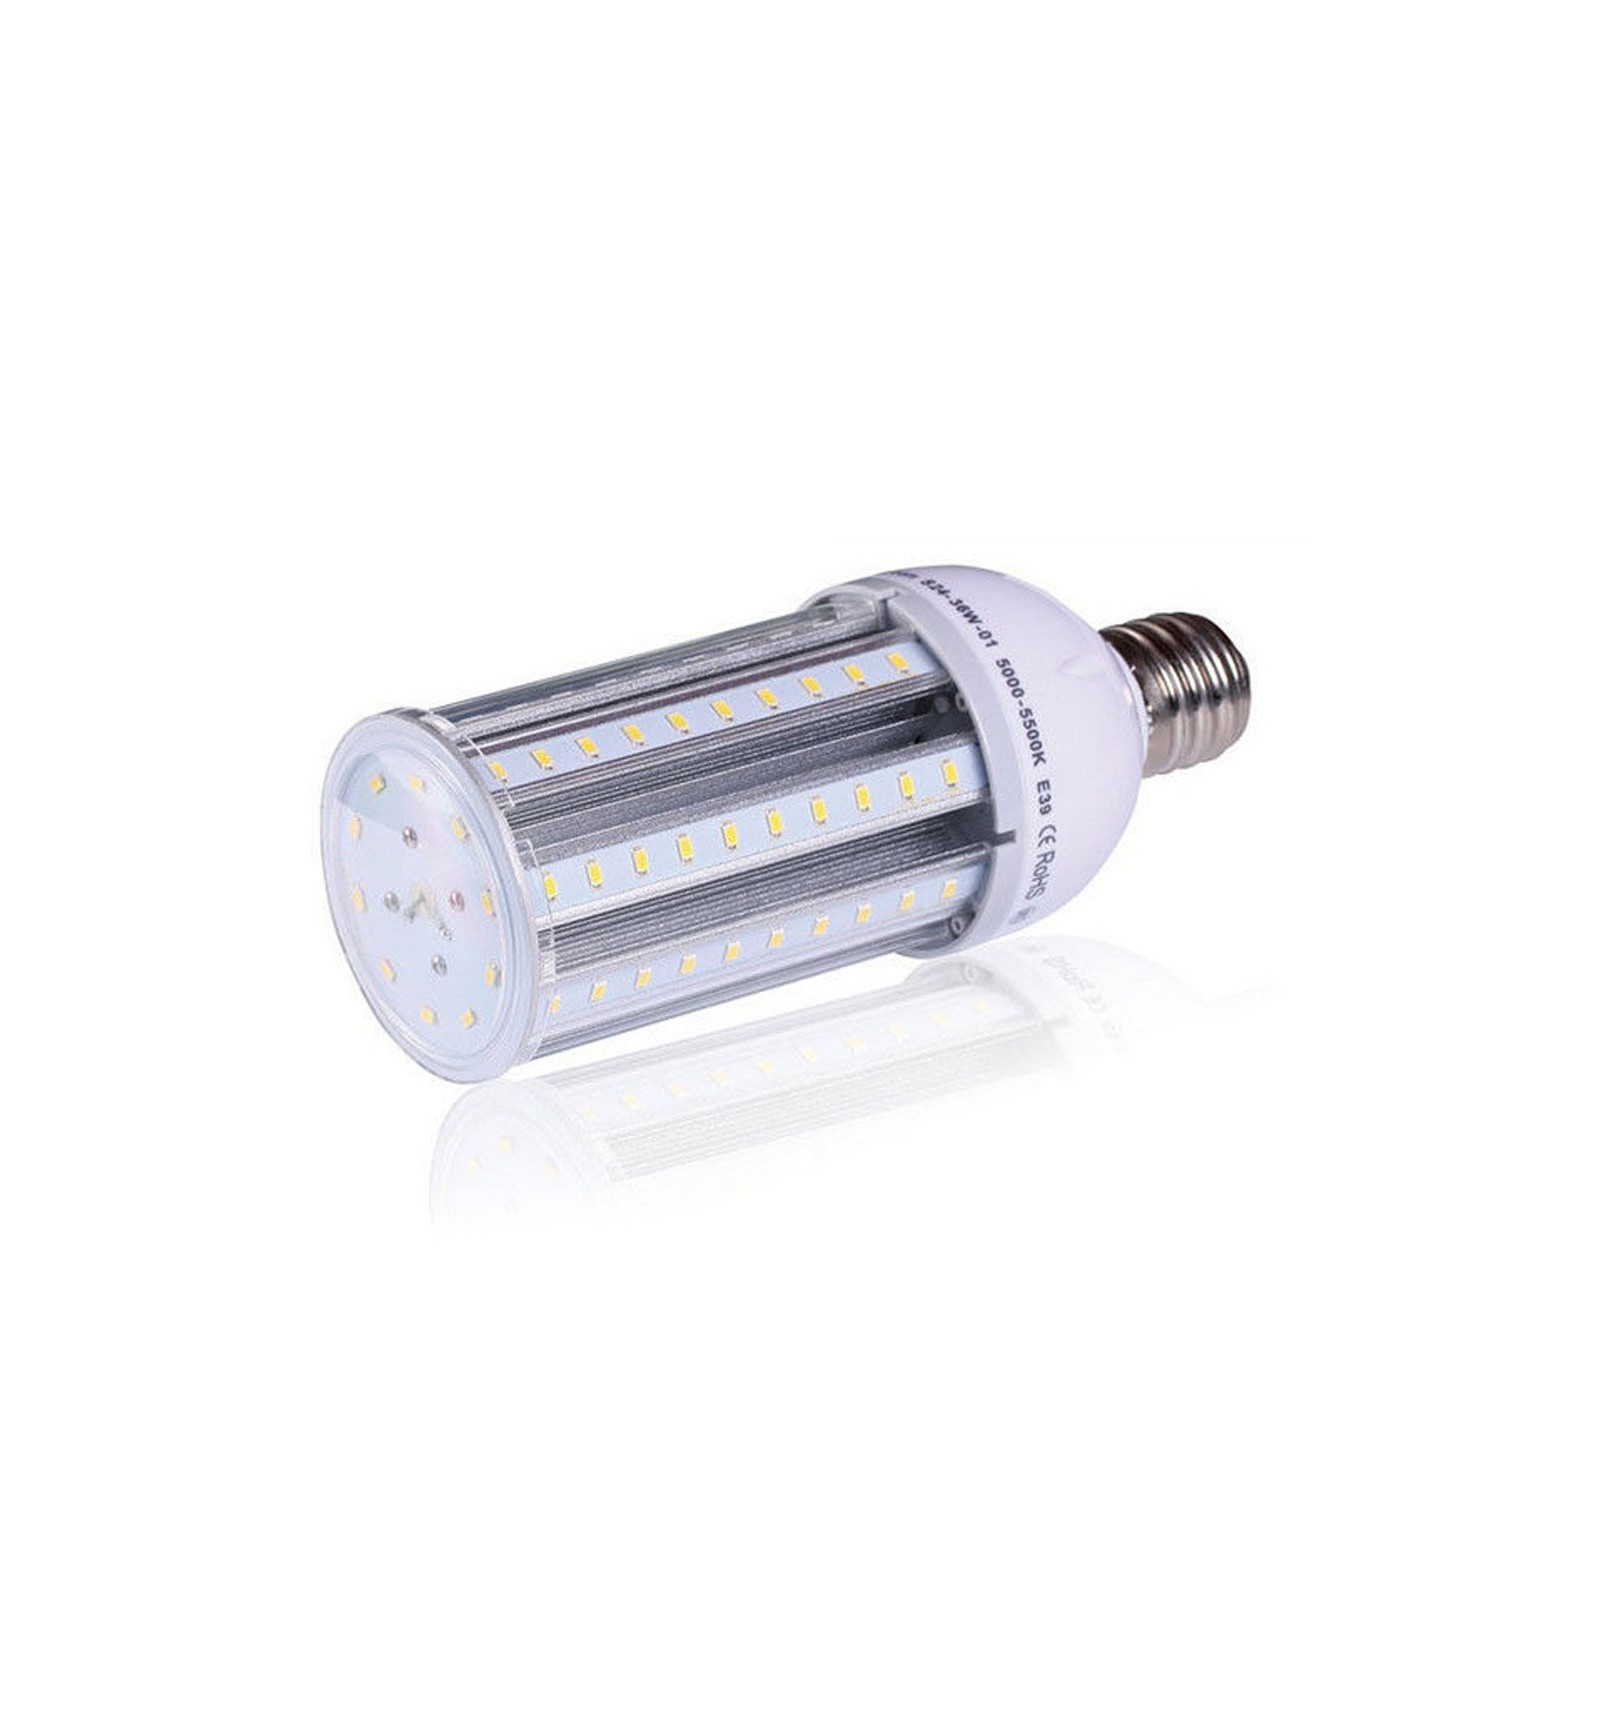 Eclairage Public A Led Ampoule Led 54w E27 Eclairage Public Projecteur Led Shop